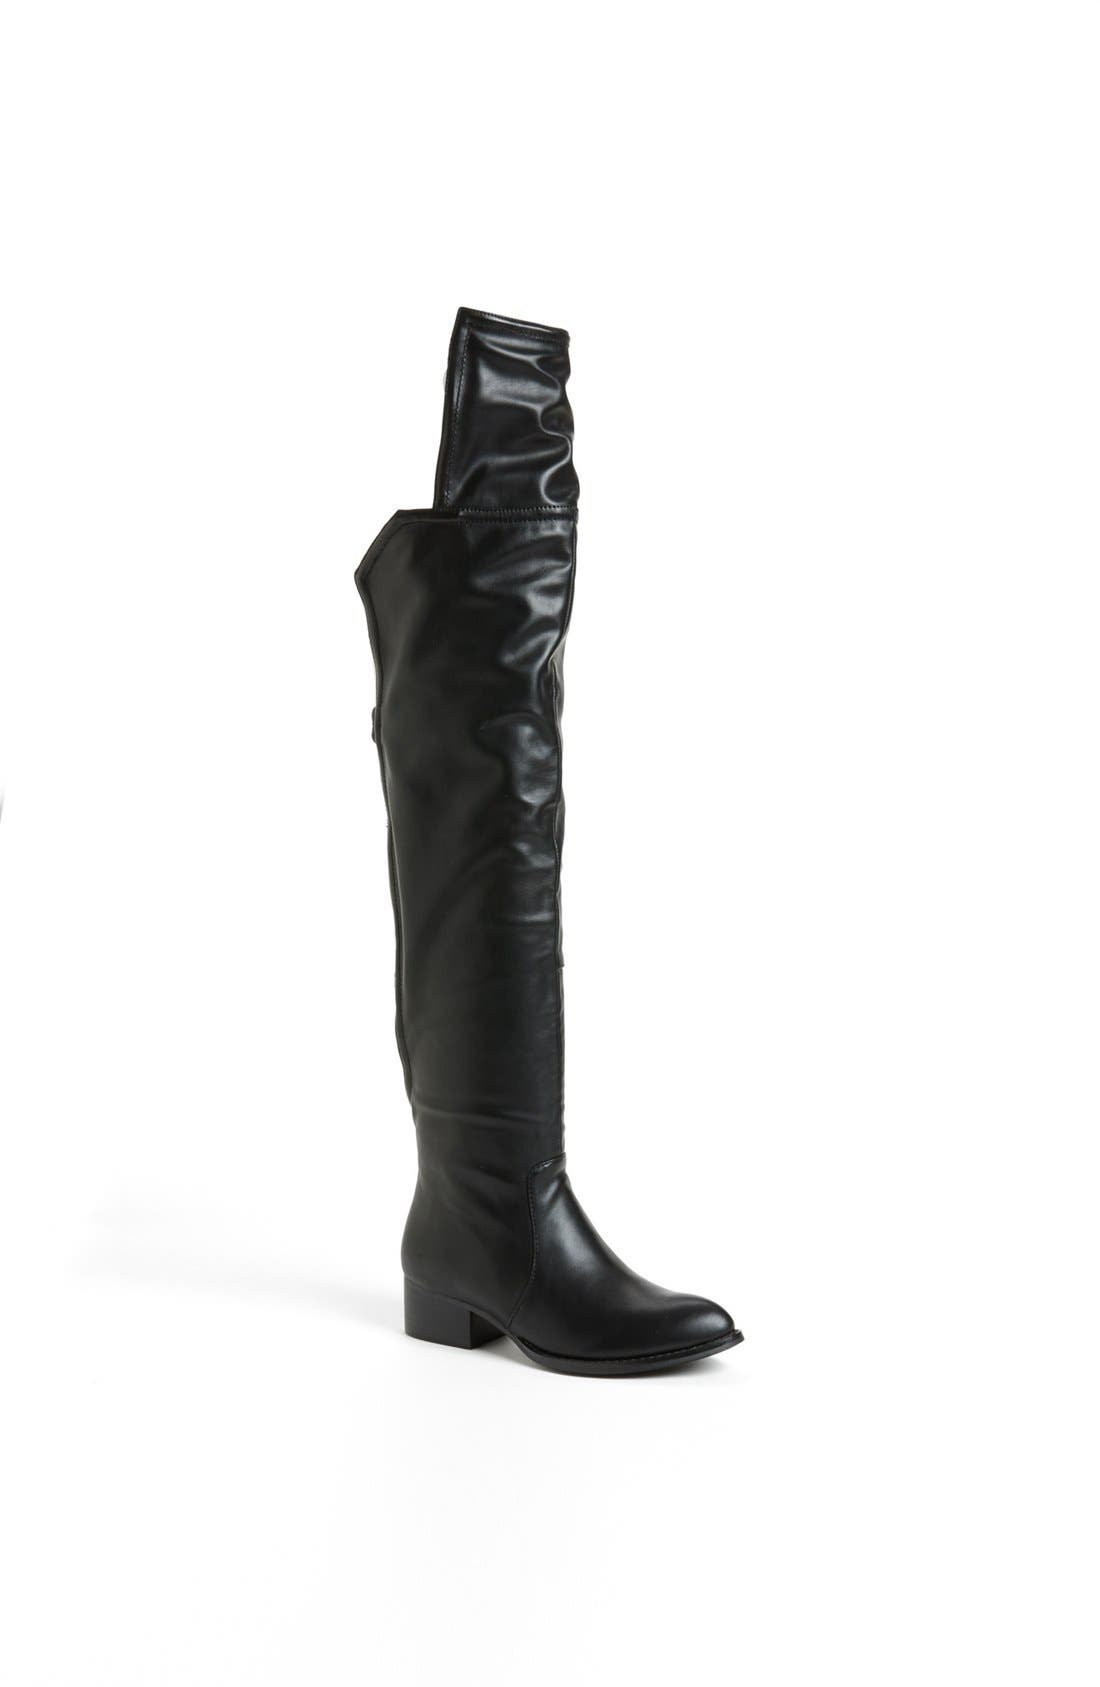 Main Image - Jeffrey Campbell 'Backside' Backless Over the Knee Boot